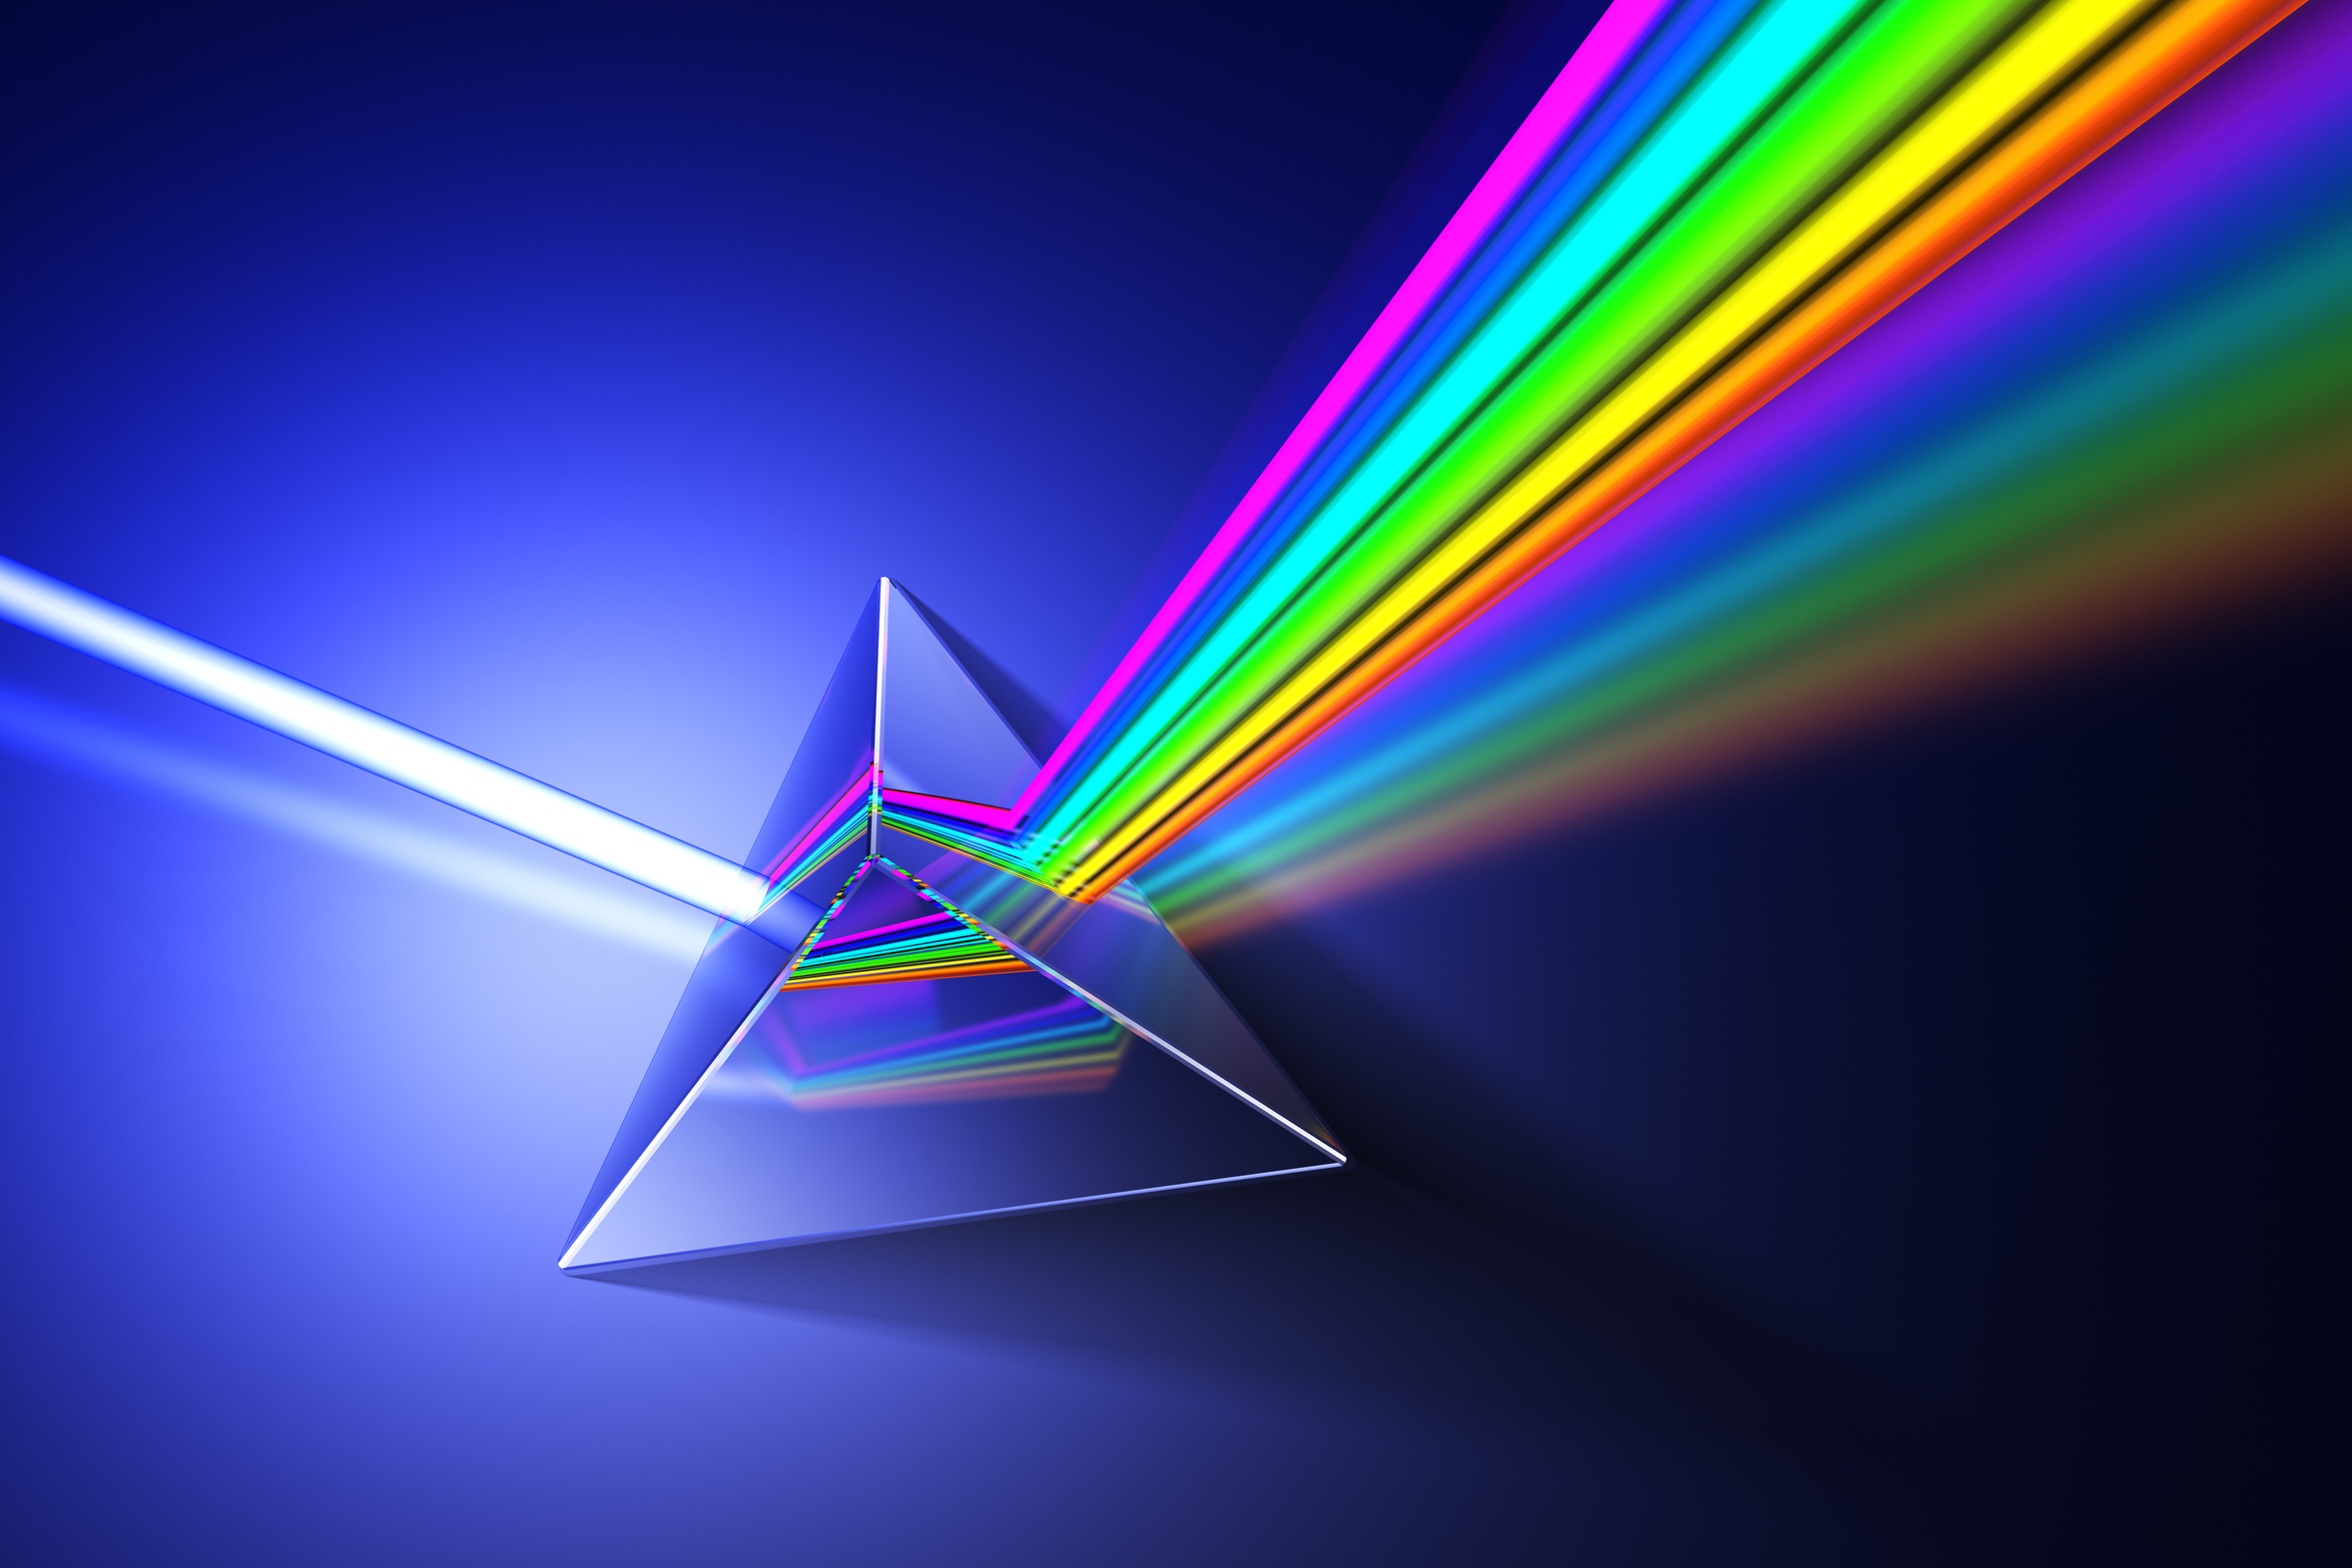 Prism Wallpapers High Quality Download Free HD Wallpapers Download Free Images Wallpaper [1000image.com]